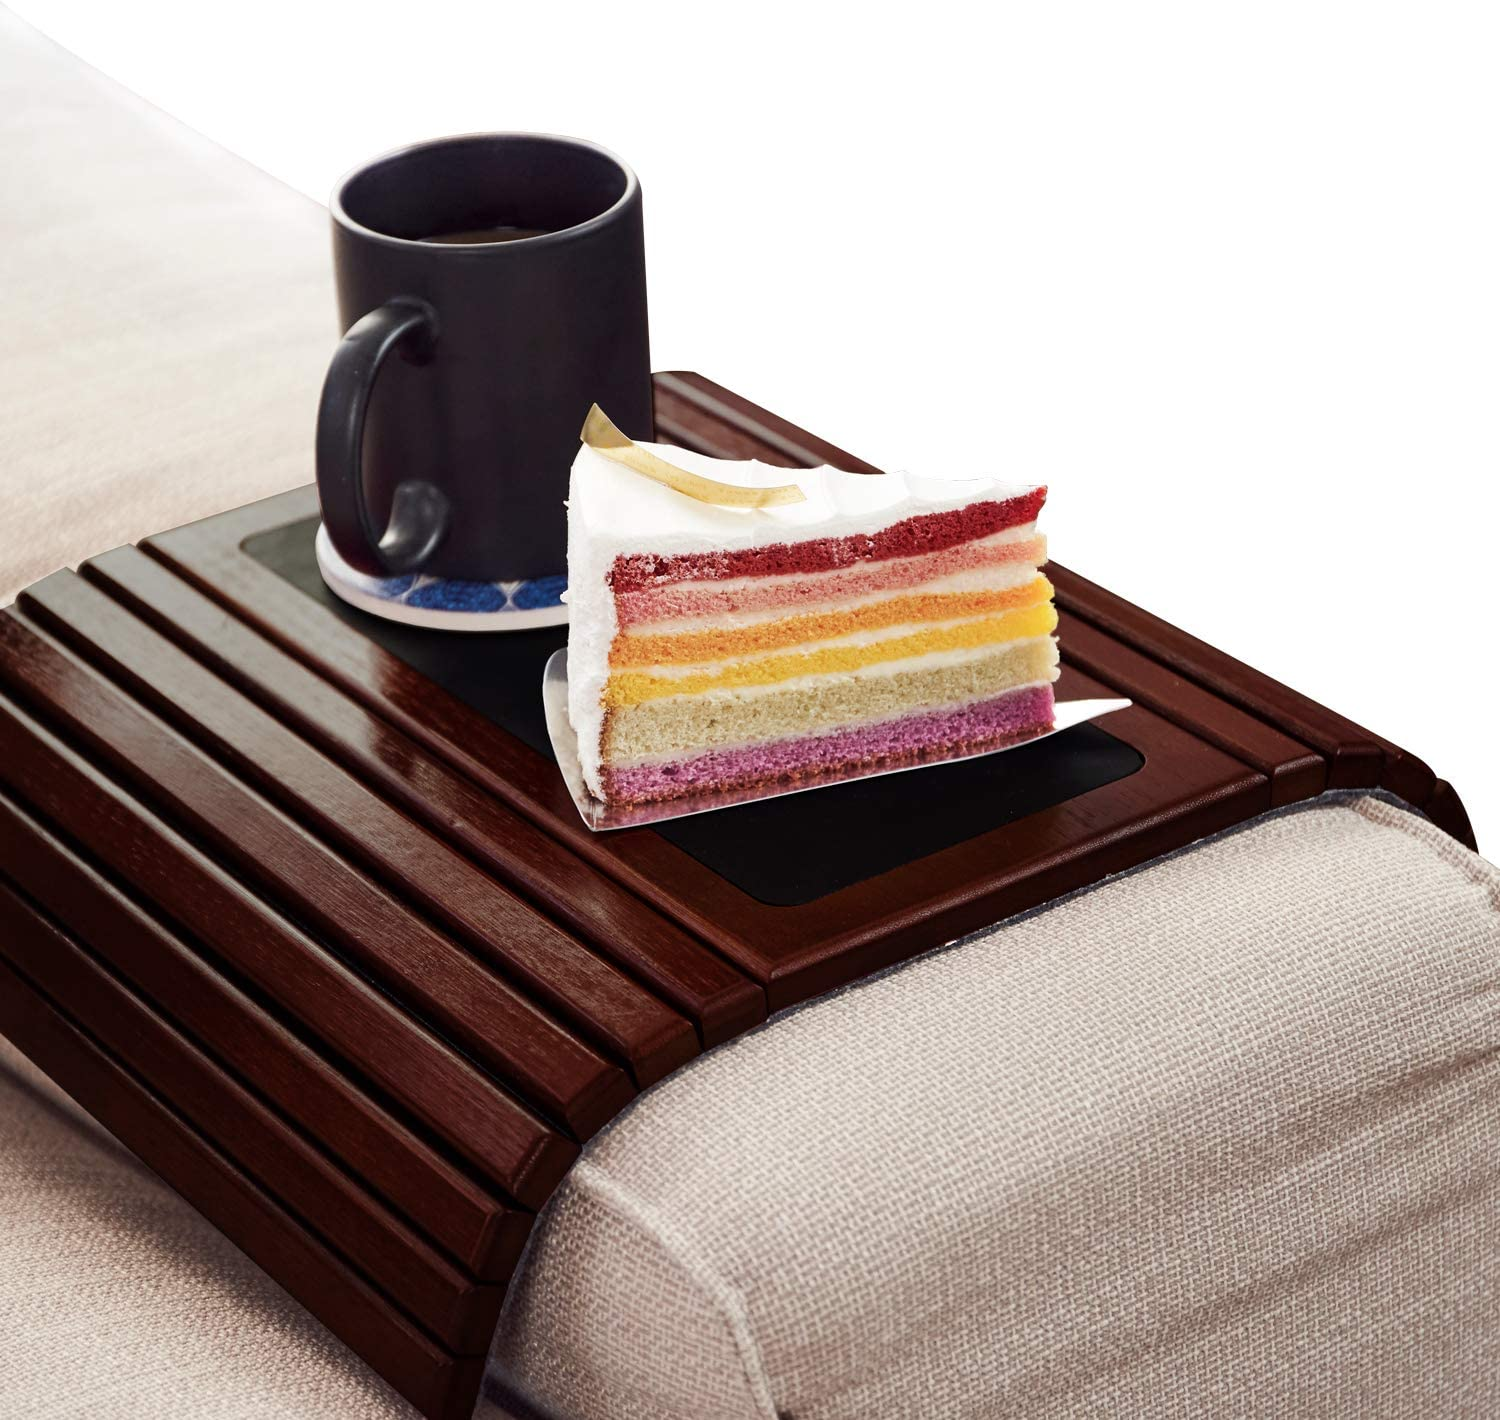 LENUE Bamboo Sofa Arm Tray - Small TV Side Table for Your Couch - Ideal Cup Holder, Drink Coaster and Remote Caddy - Perfect for Birthday, Housewarming & Wedding Gifts